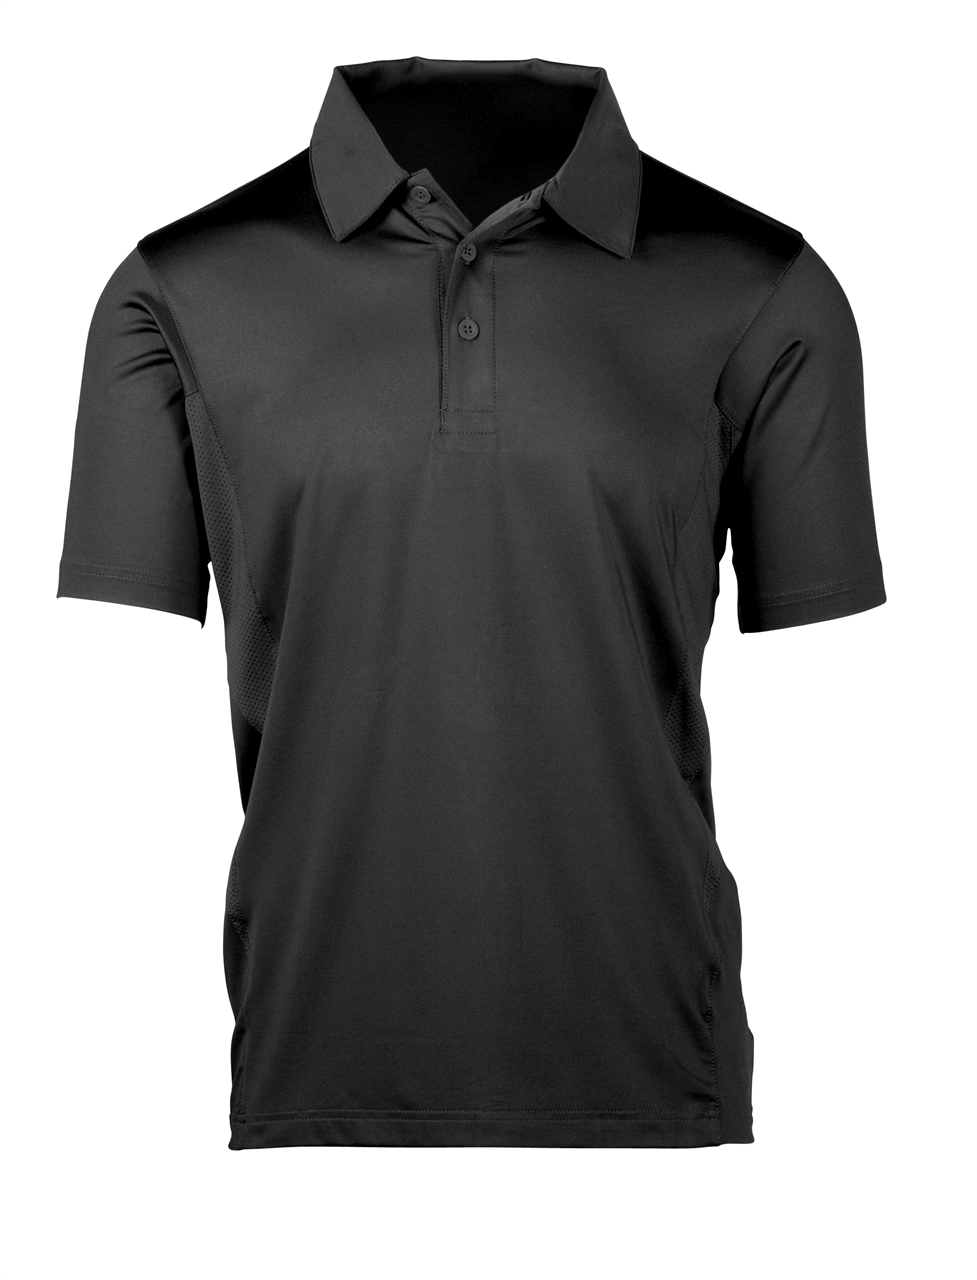 Picture of Team 365 Men's Charger Performance Polo